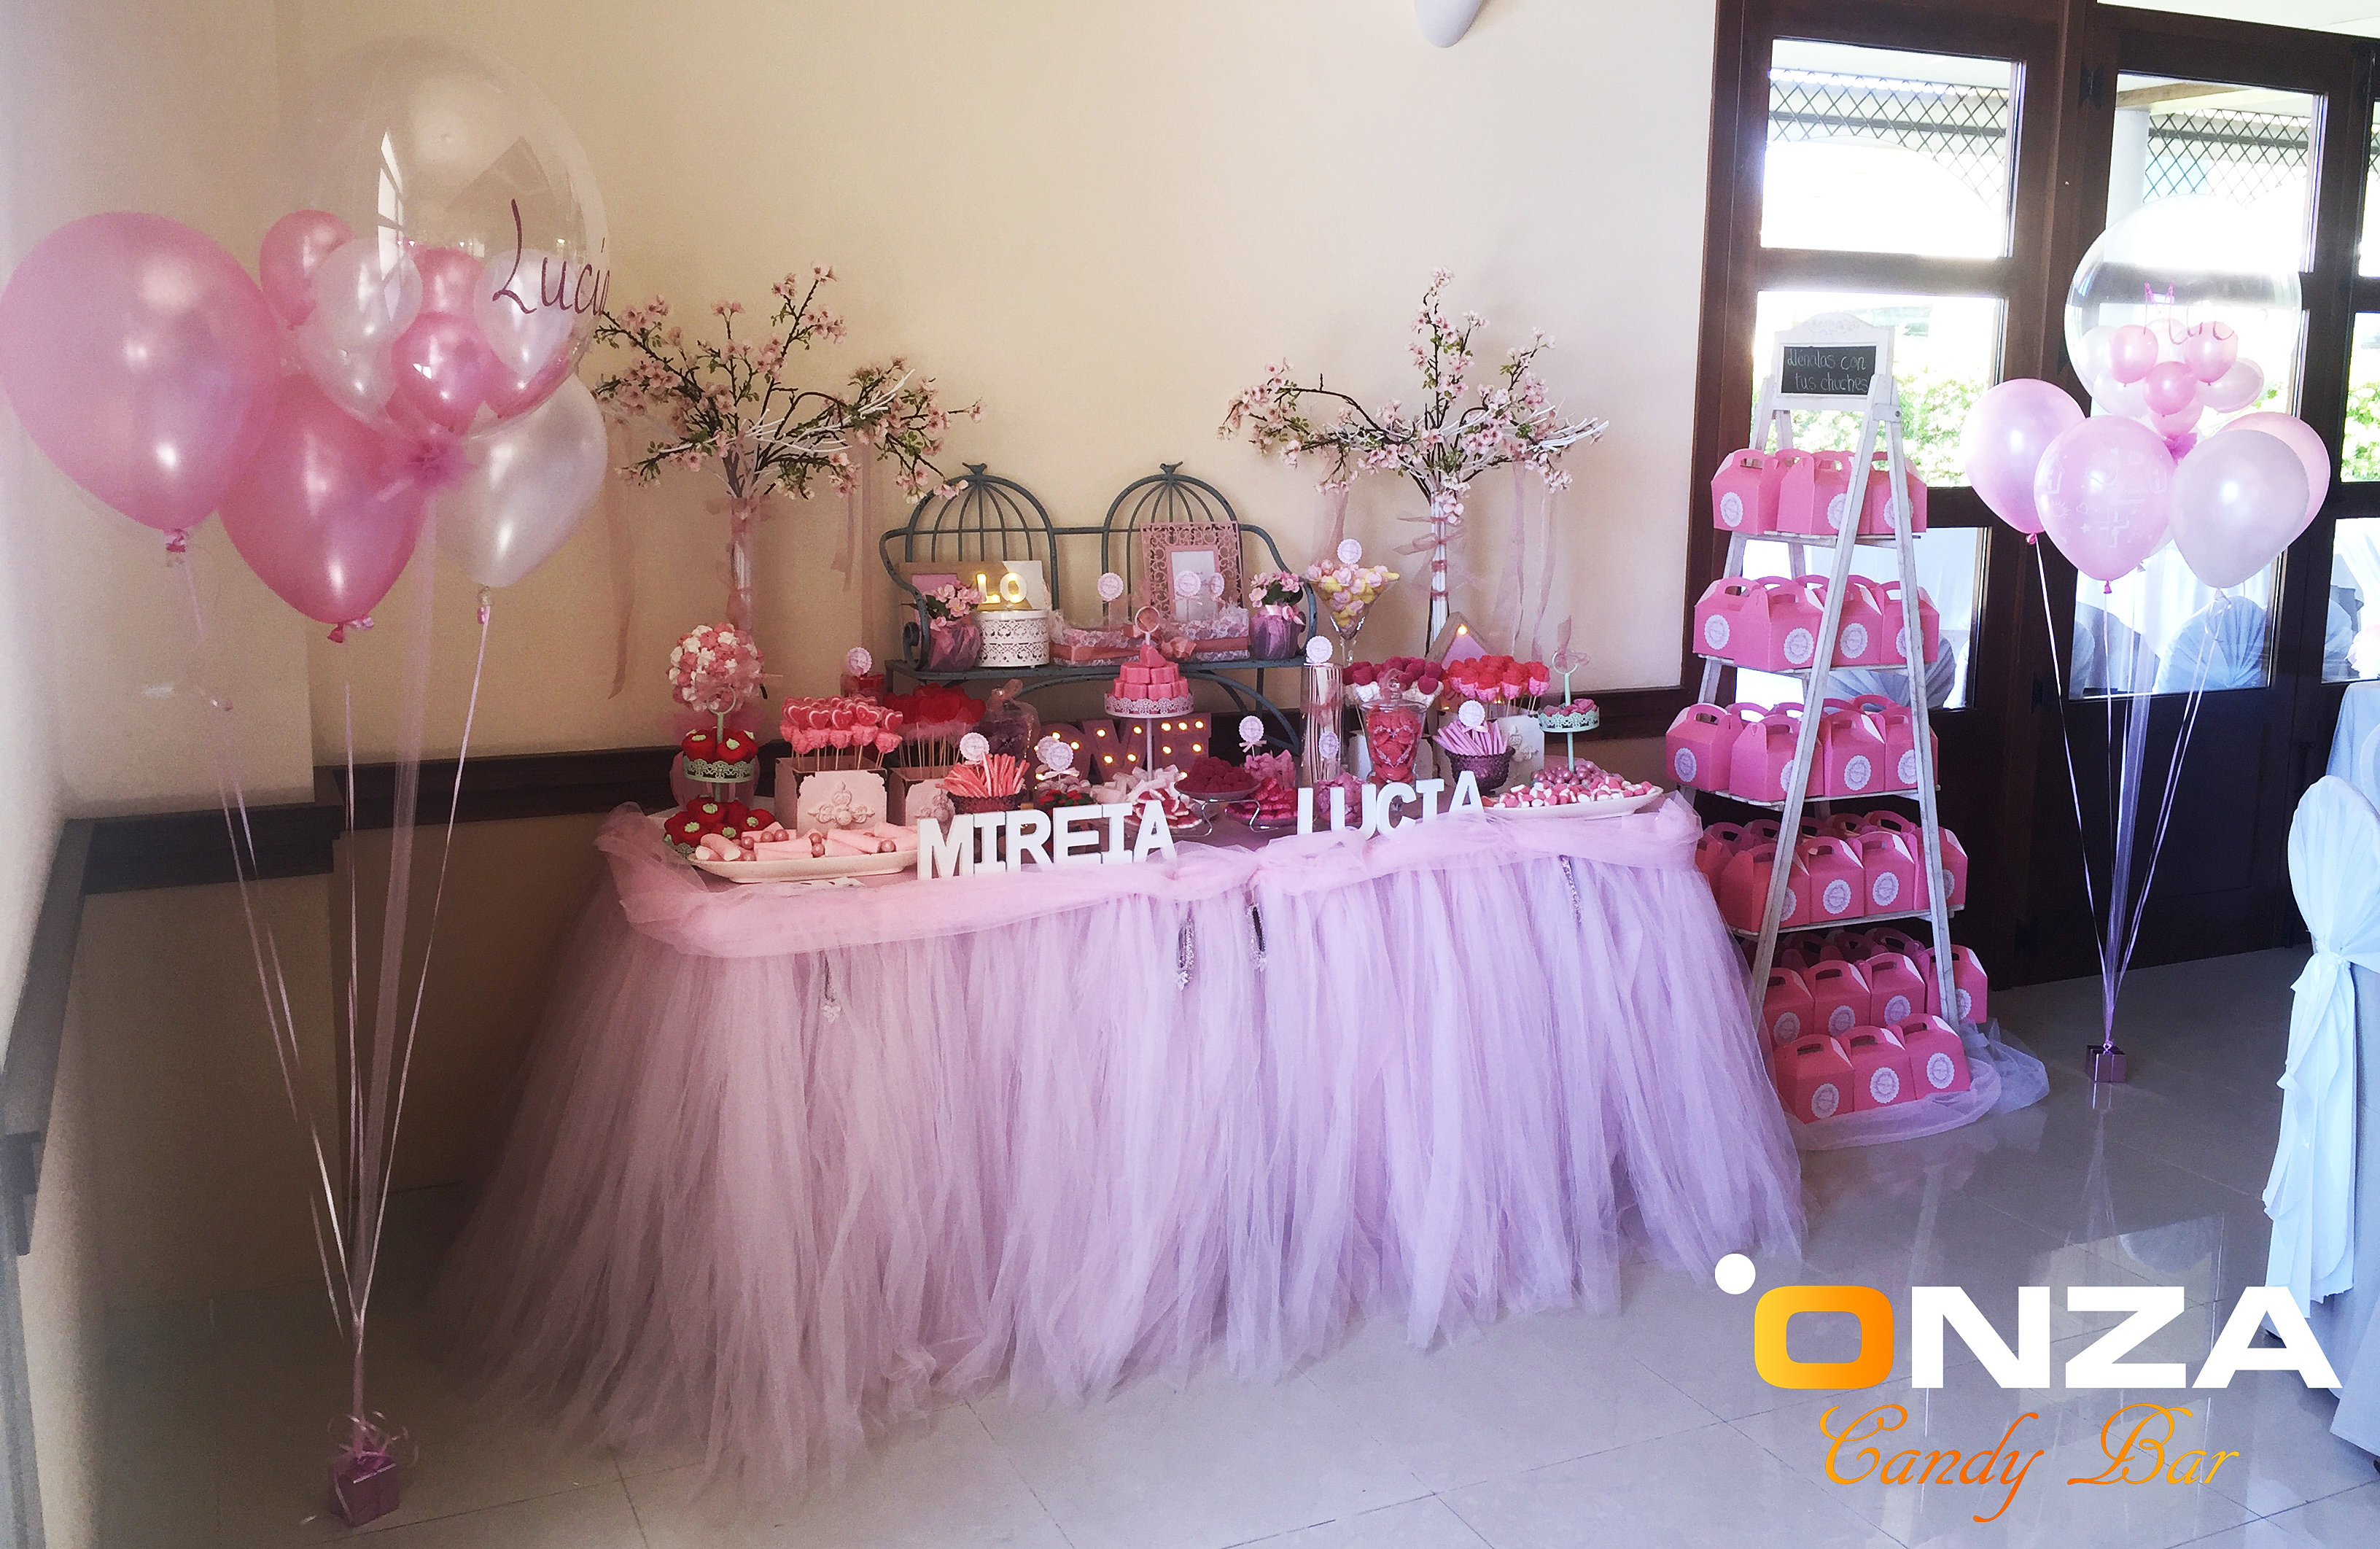 Onza candy bar tartas de chuches mesas dulces for Carritos de chuches para comuniones precios